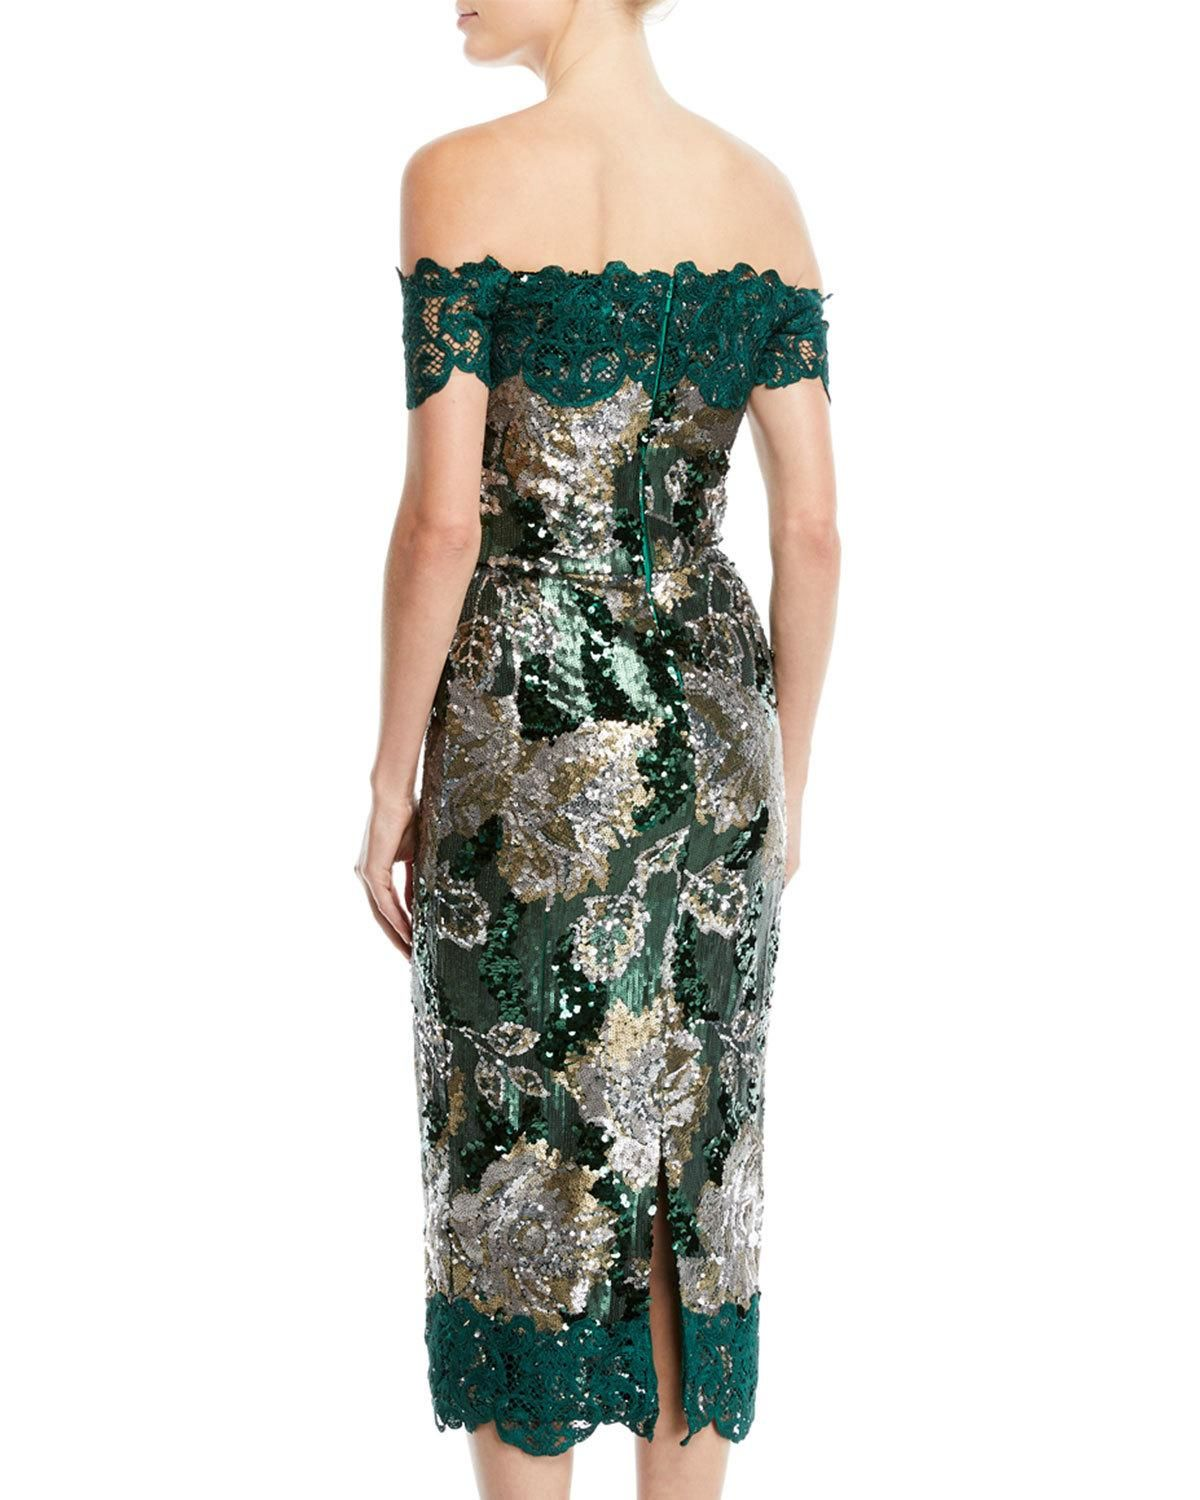 a514a8515c Marchesa Notte Off-the-Shoulder Sequined Peony Cocktail Dress with Guipure  Lace Trim